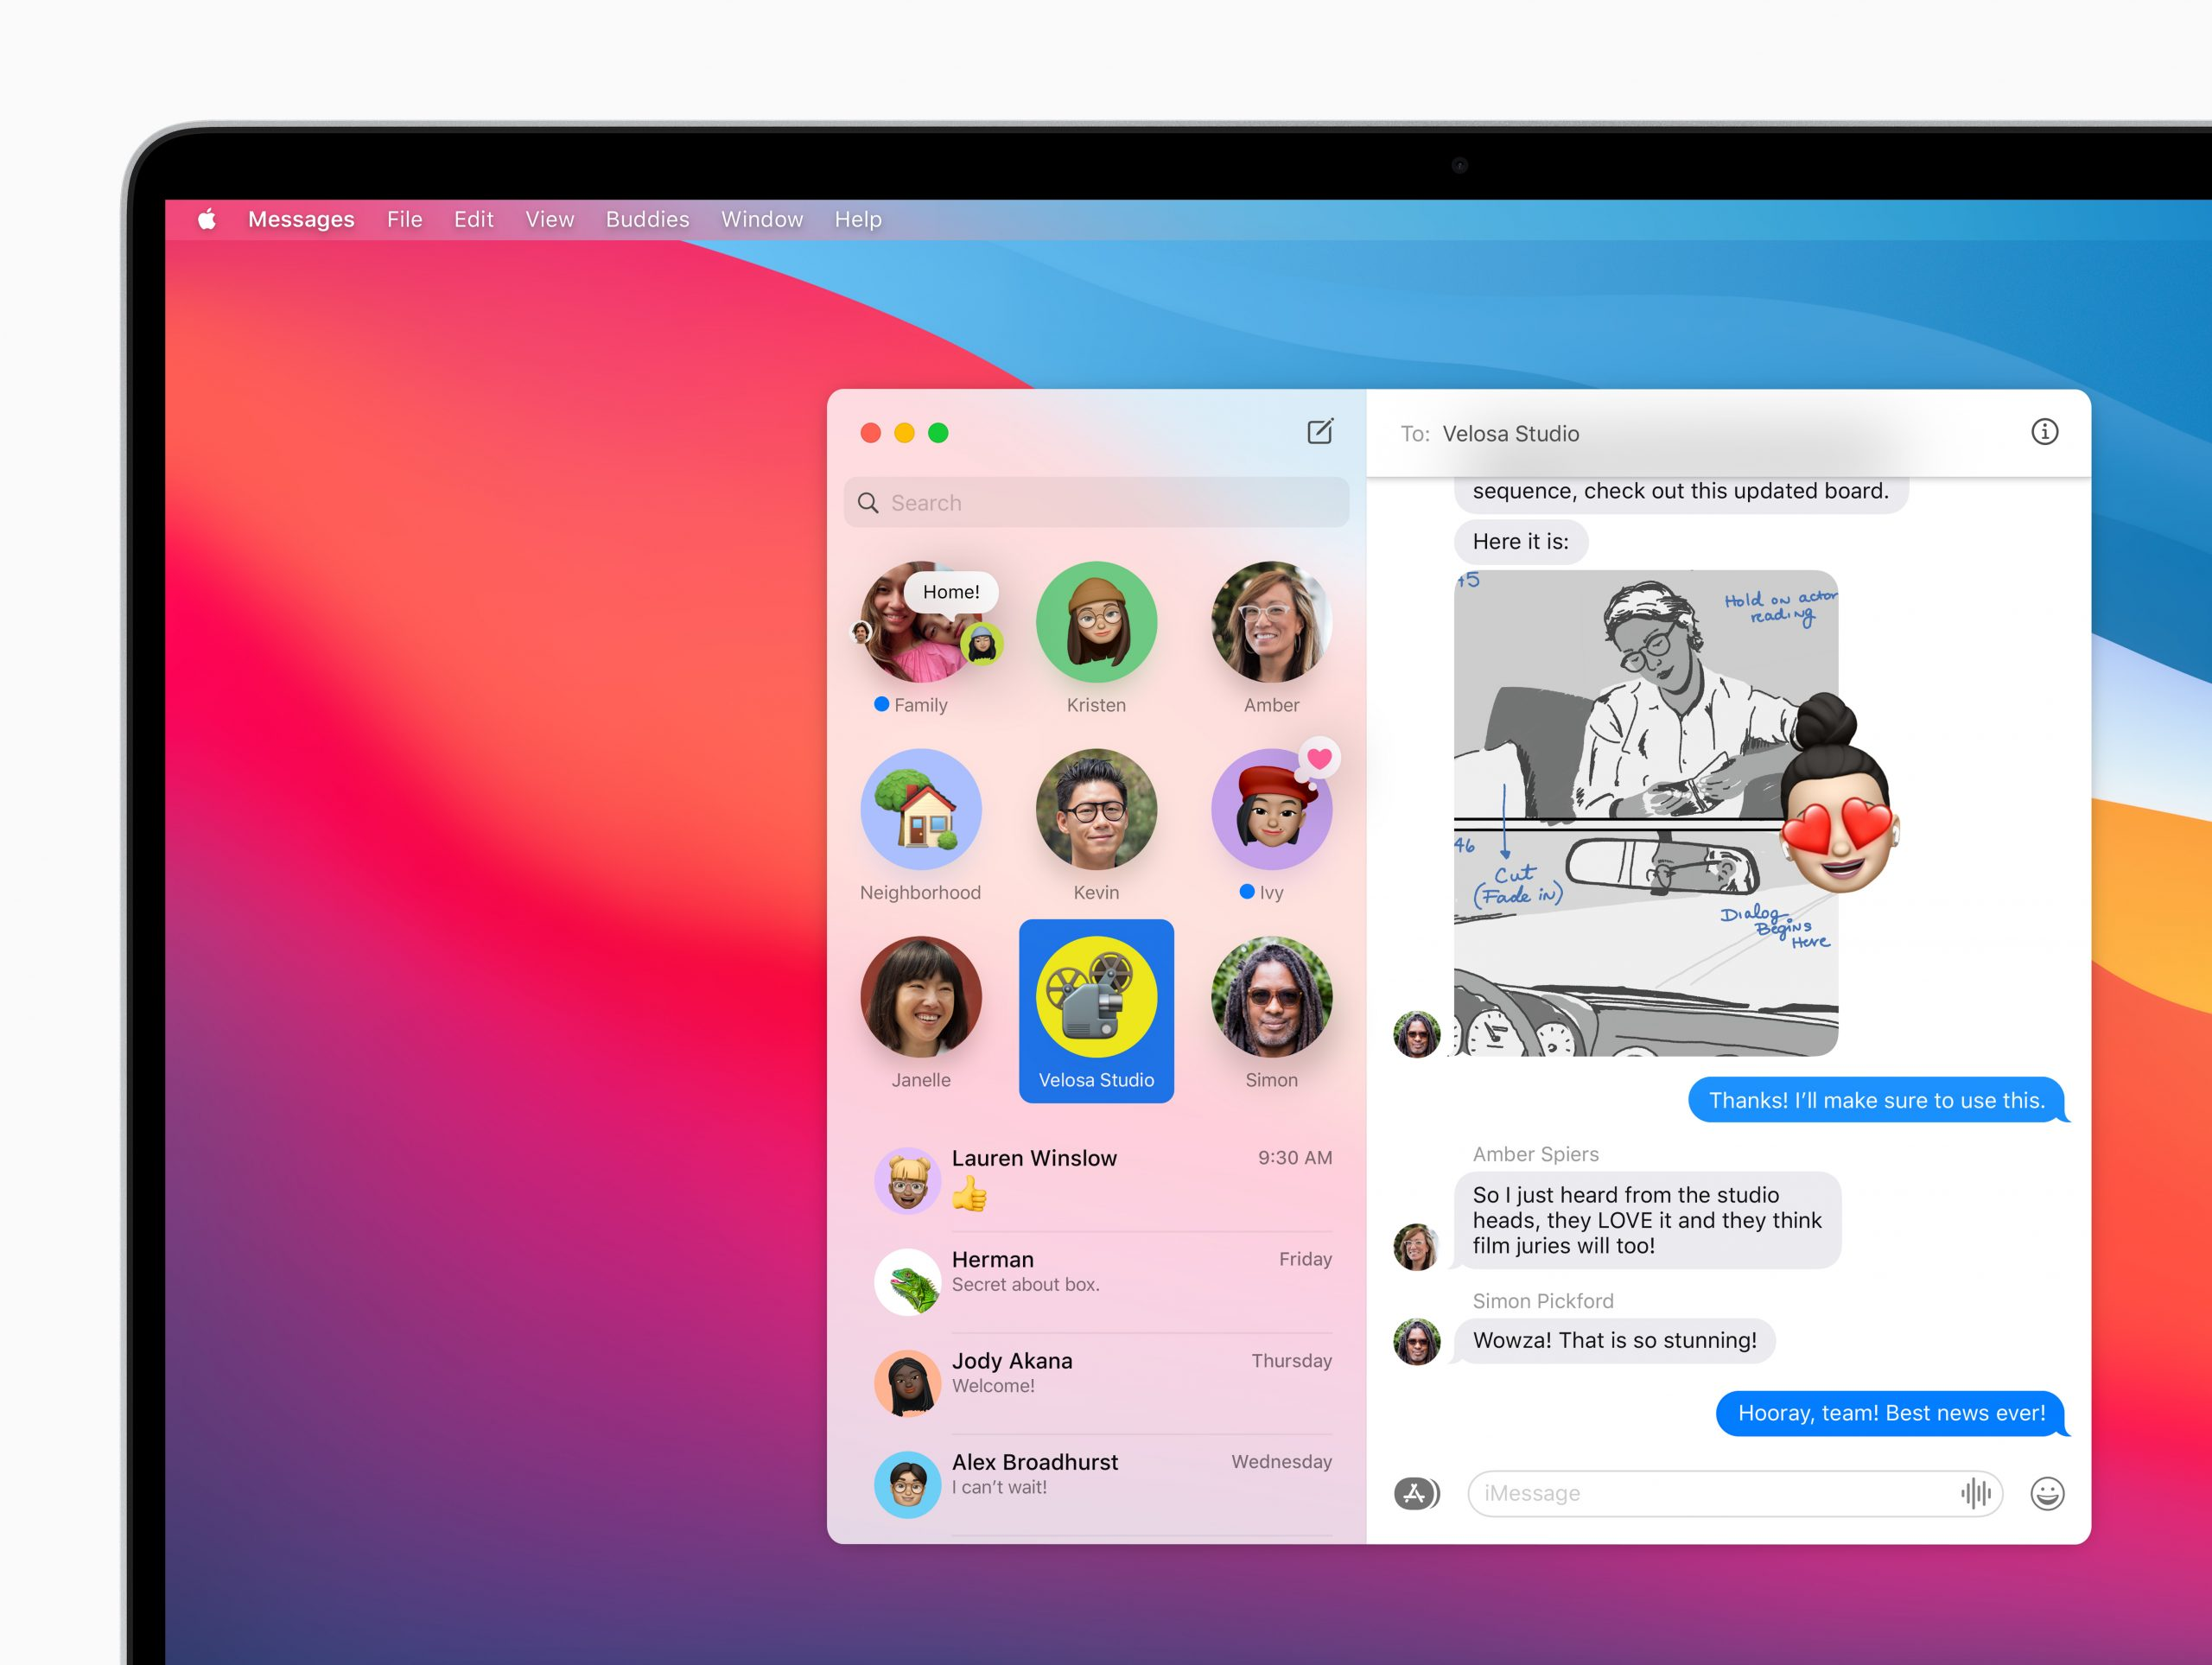 apple macos bigsur messages pnnedconversations 06222020 scaled